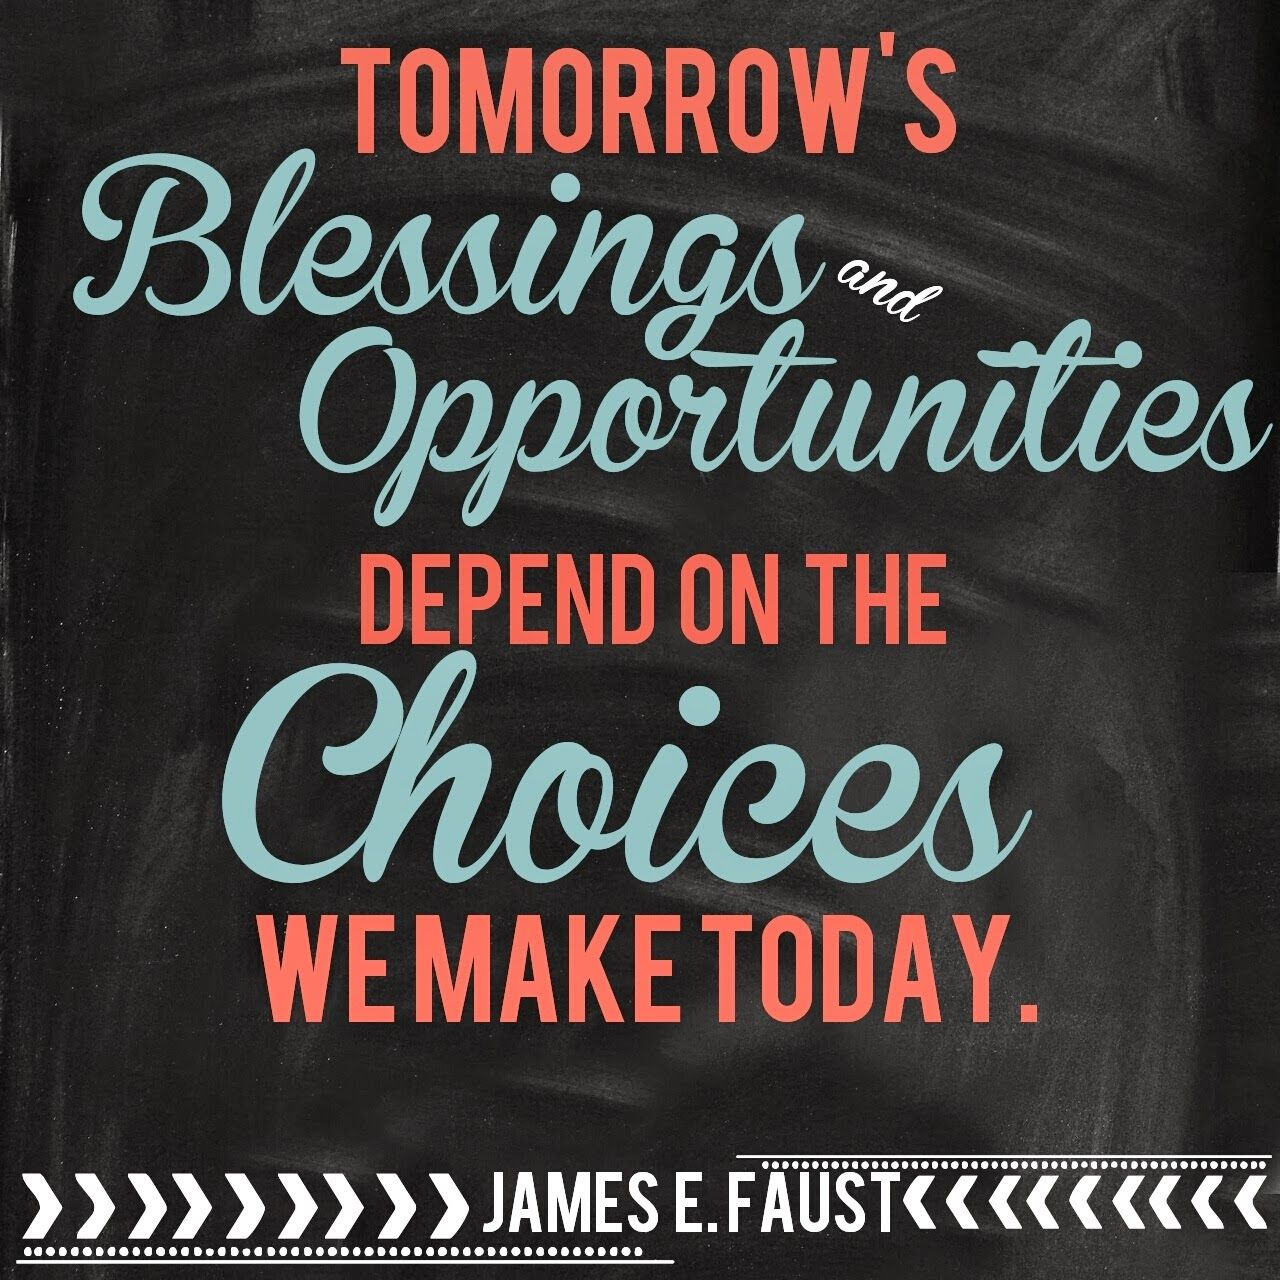 English Quotes: Life Quotes: Tomorrow's Blessings And Oppotunities Depend